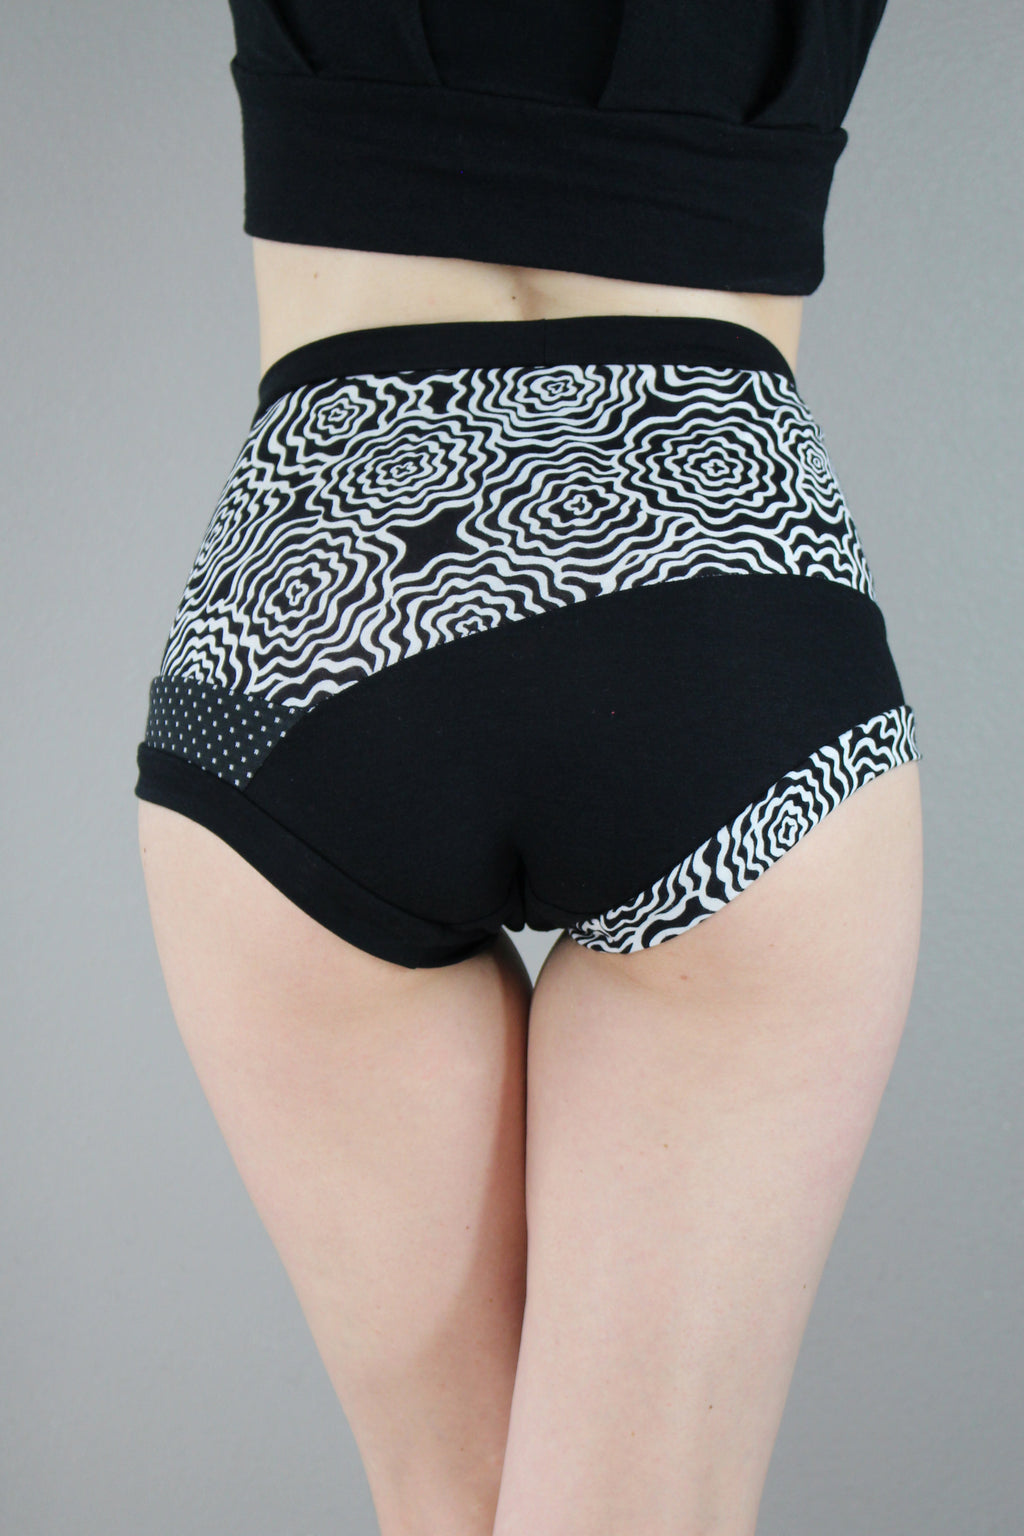 Black and white print, High Waist Panties, Color Block